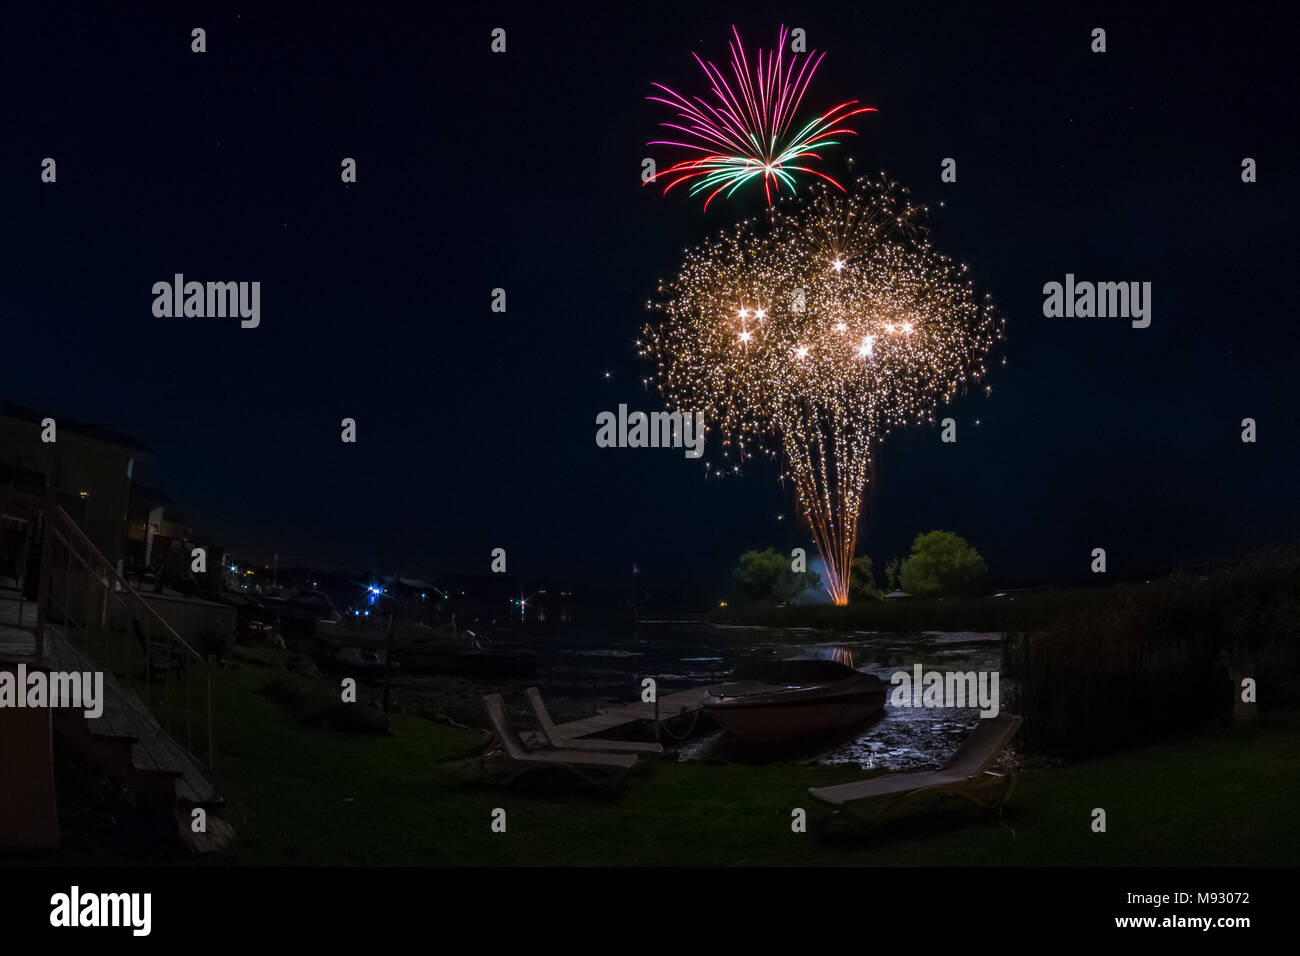 Fireworks over cottage lake showing cottages,boats and dock on the background - Stock Image